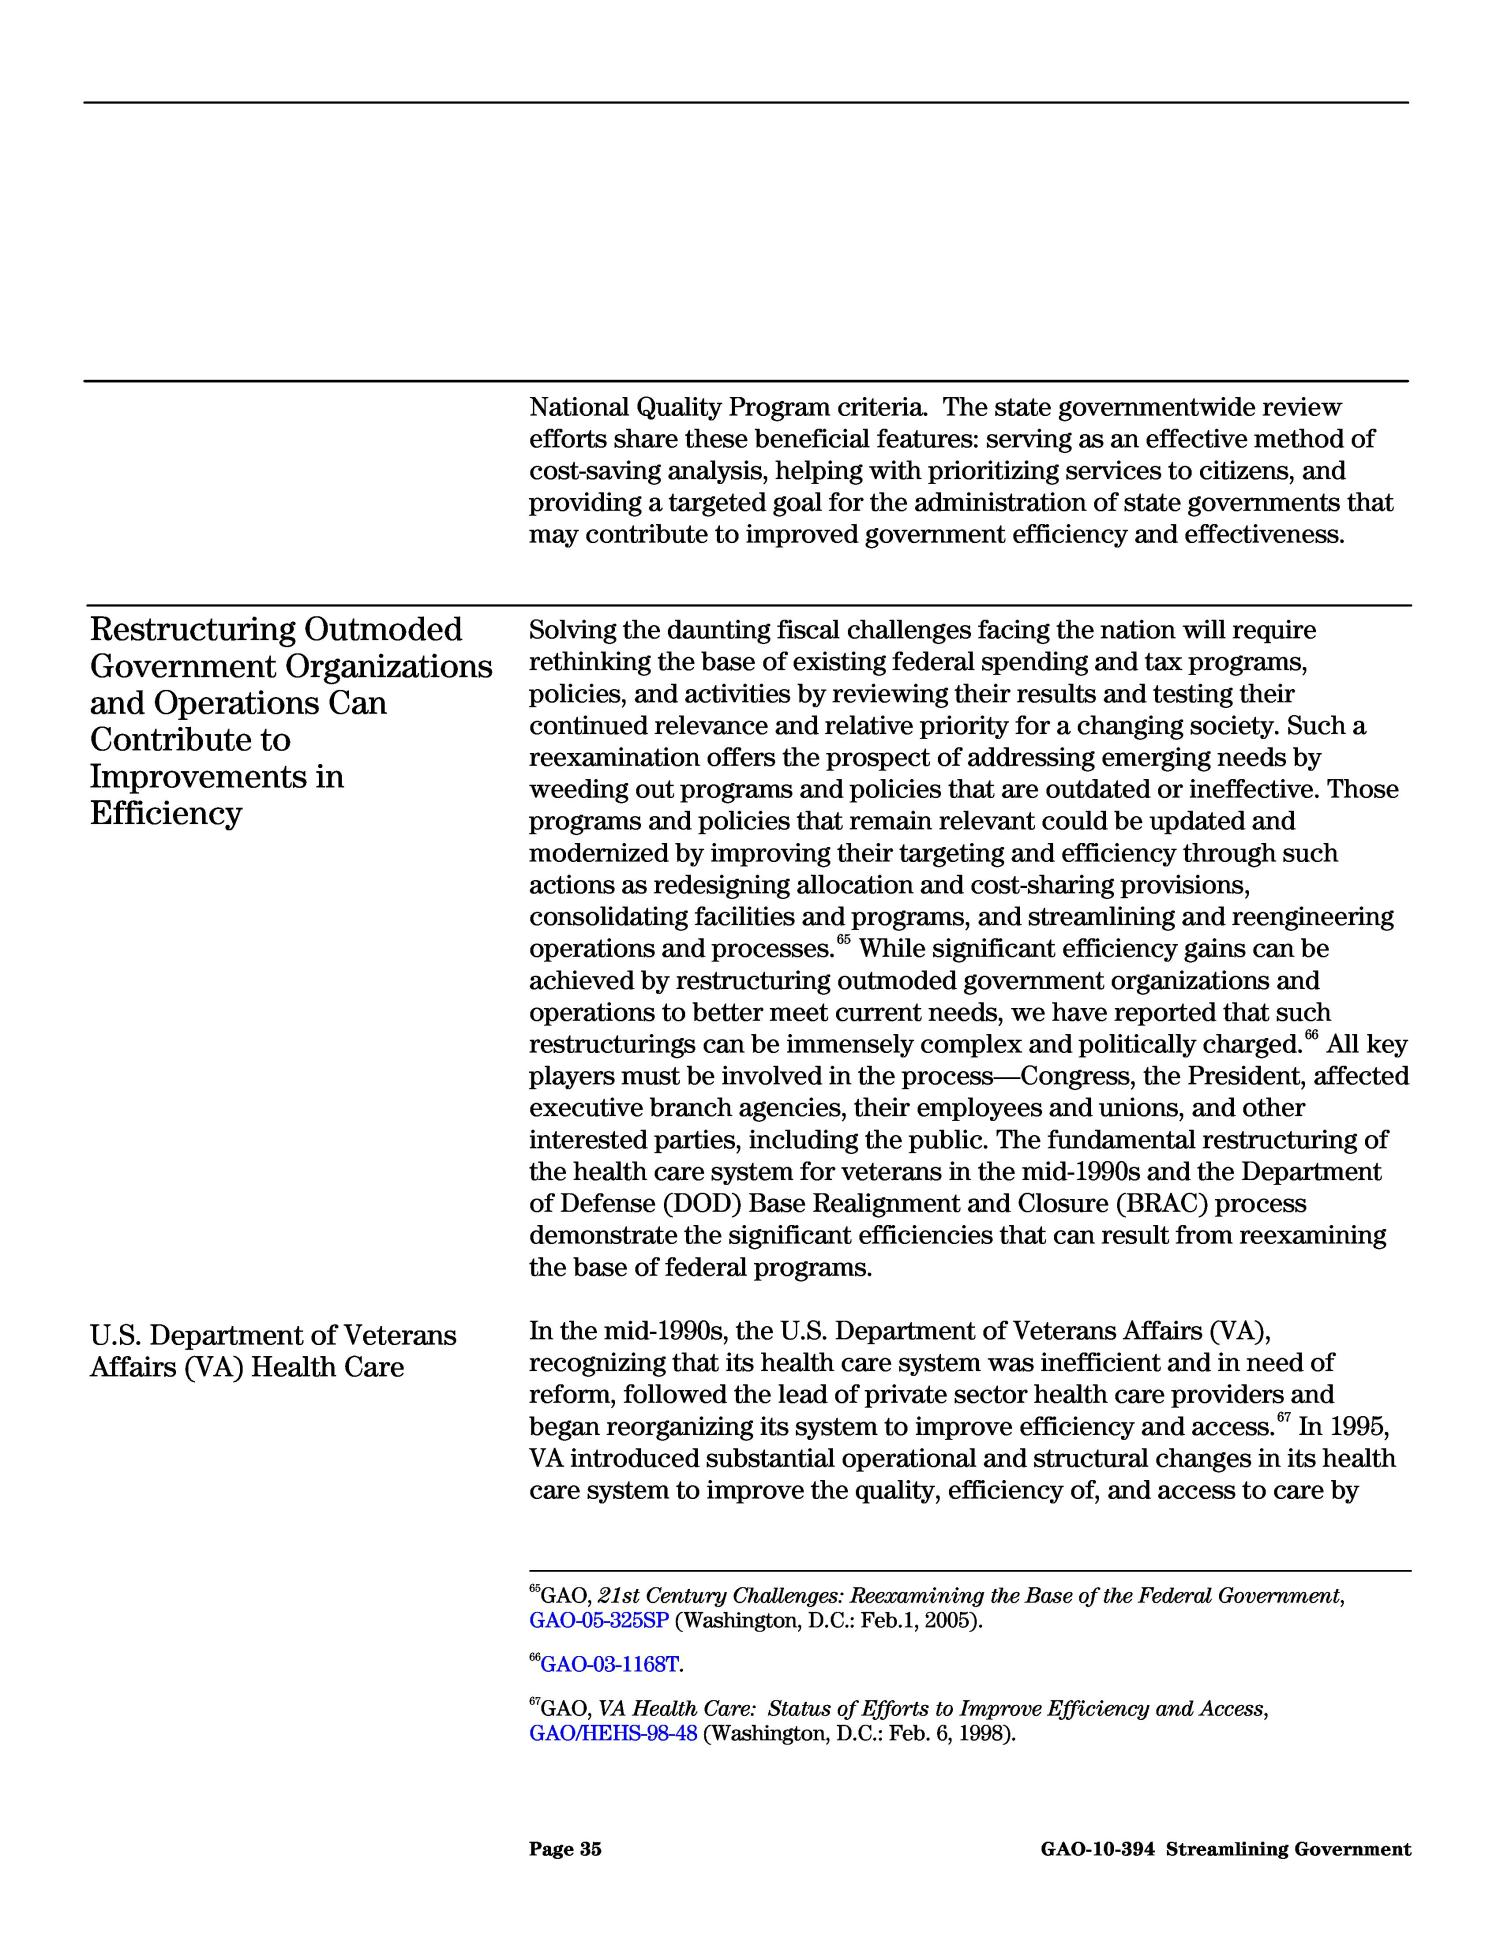 Streamlining Government: Opportunities Exist to Strengthen OMB's Approach to Improving Efficiency                                                                                                      [Sequence #]: 41 of 73